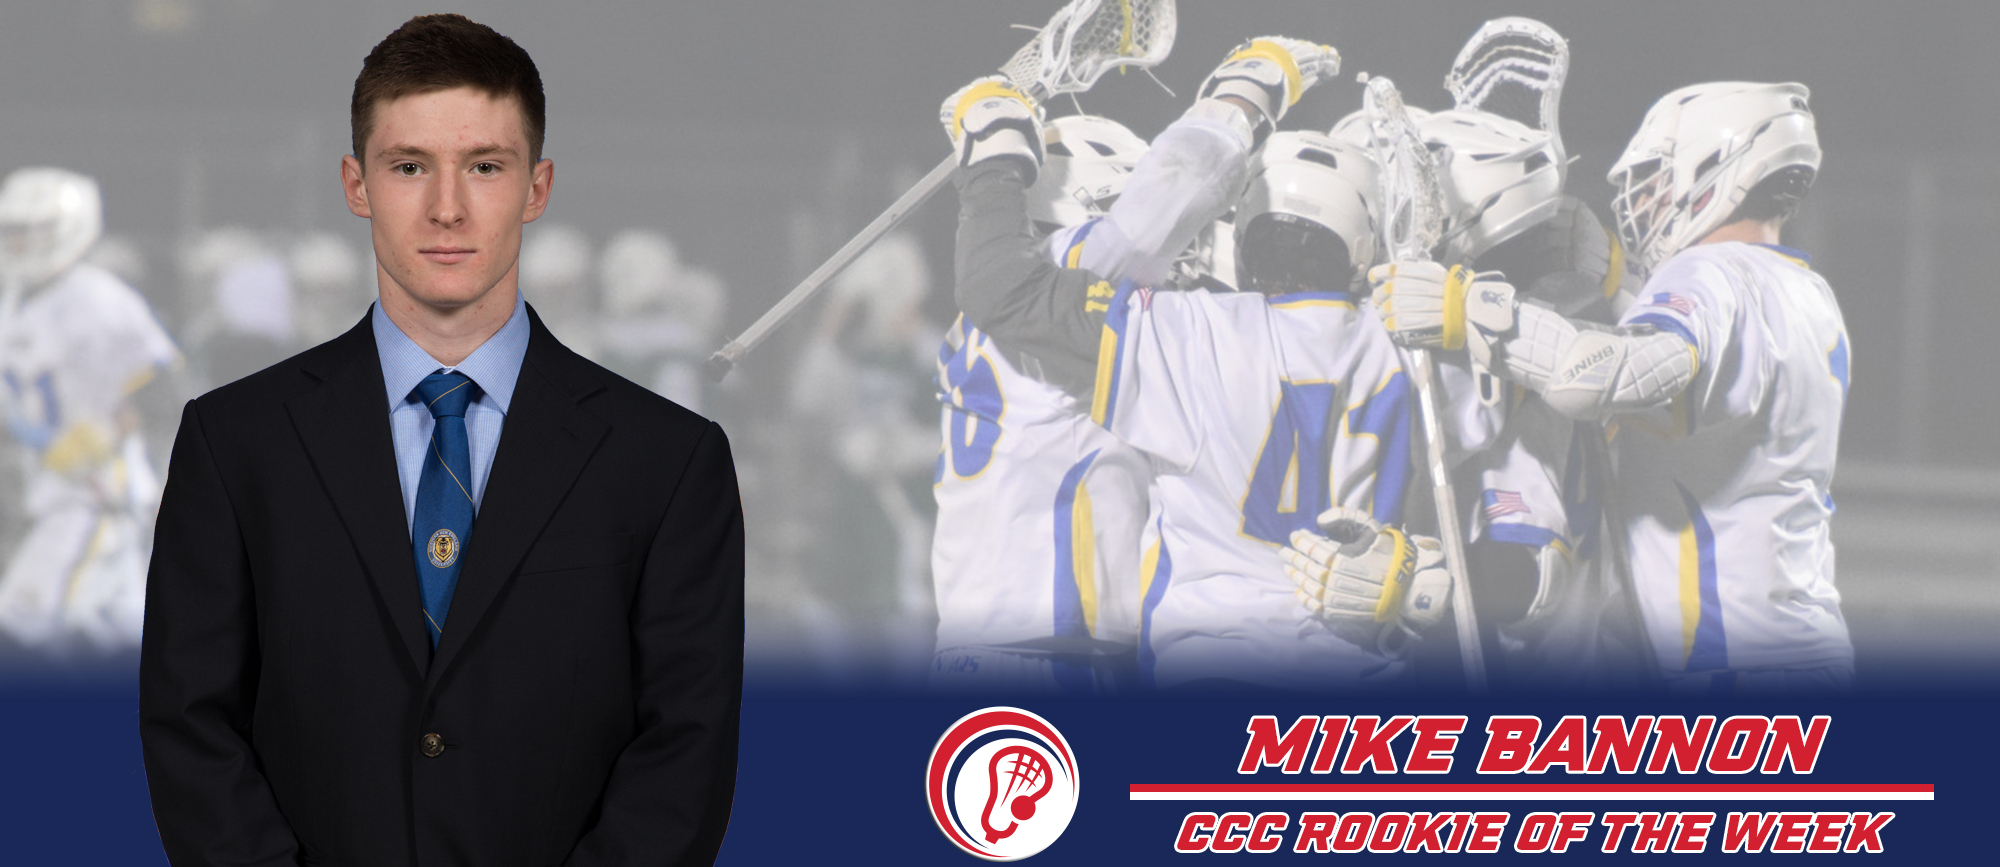 Mike Bannon Named CCC Rookie of the Week